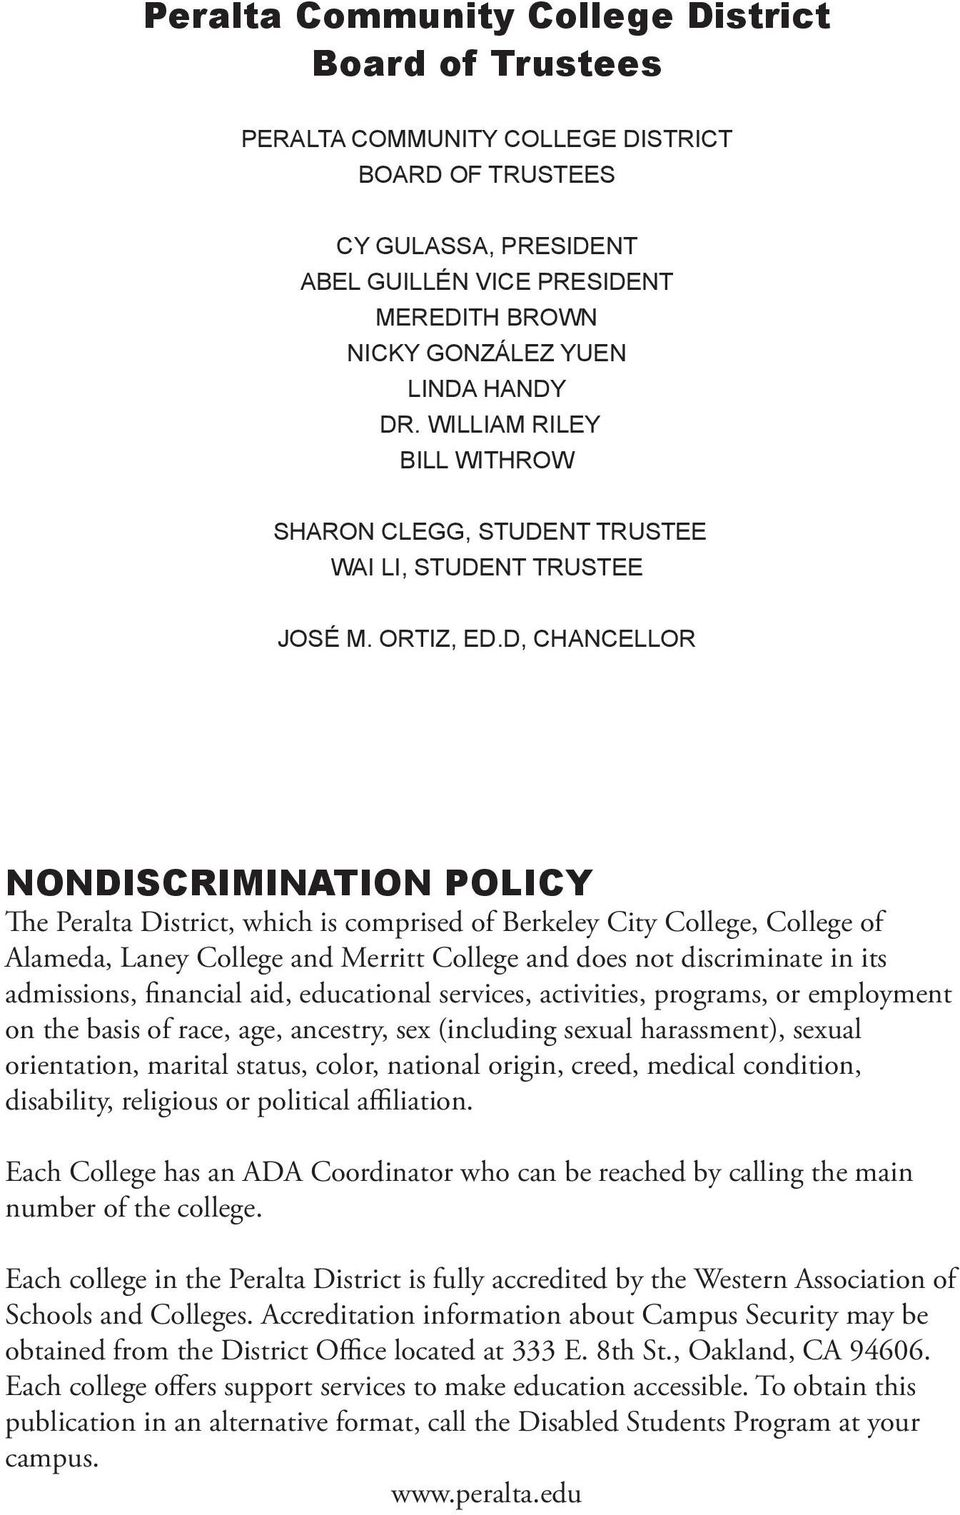 D, CHANCELLOR NONDISCRIMINATION POLICY The Peralta District, which is comprised of Berkeley City College, College of Alameda, Laney College and Merritt College and does not discriminate in its